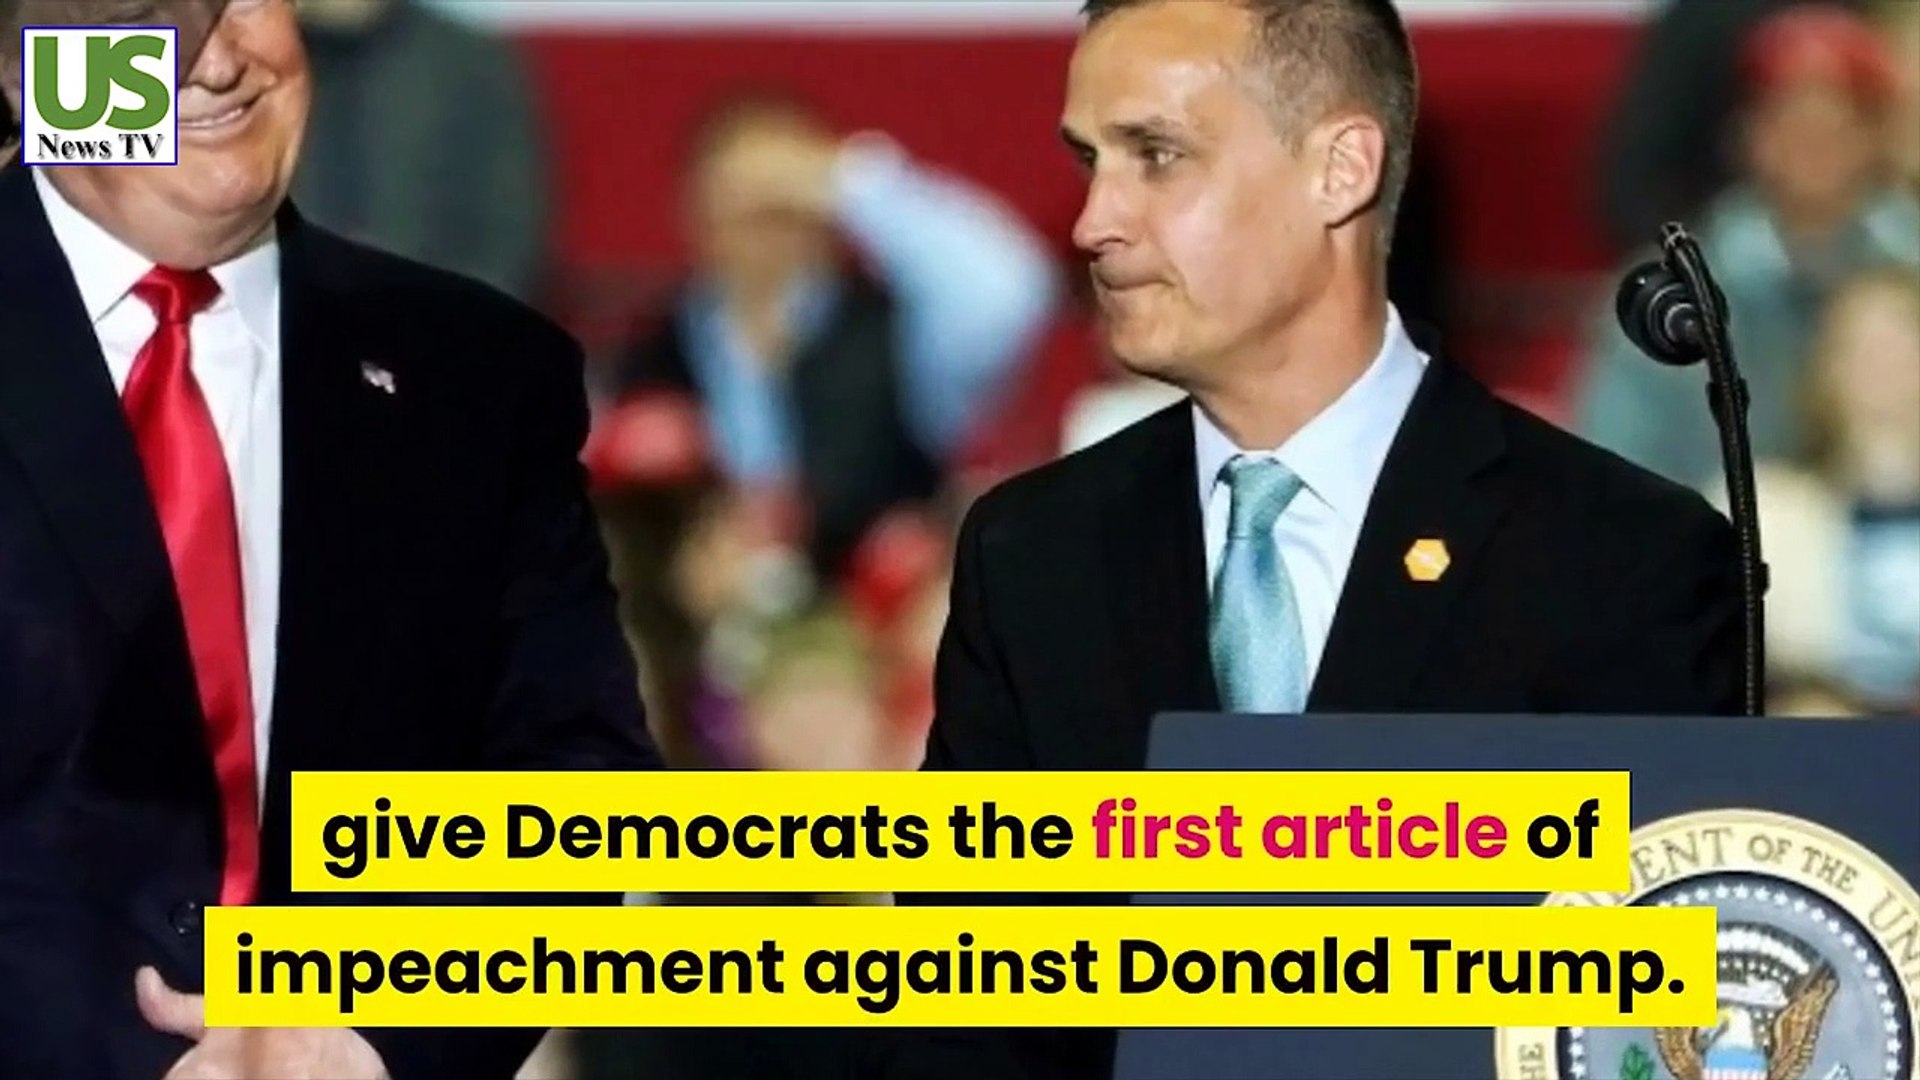 The GOP said Corey Lewandowski had just come up with the first clause of impeachment against Trump